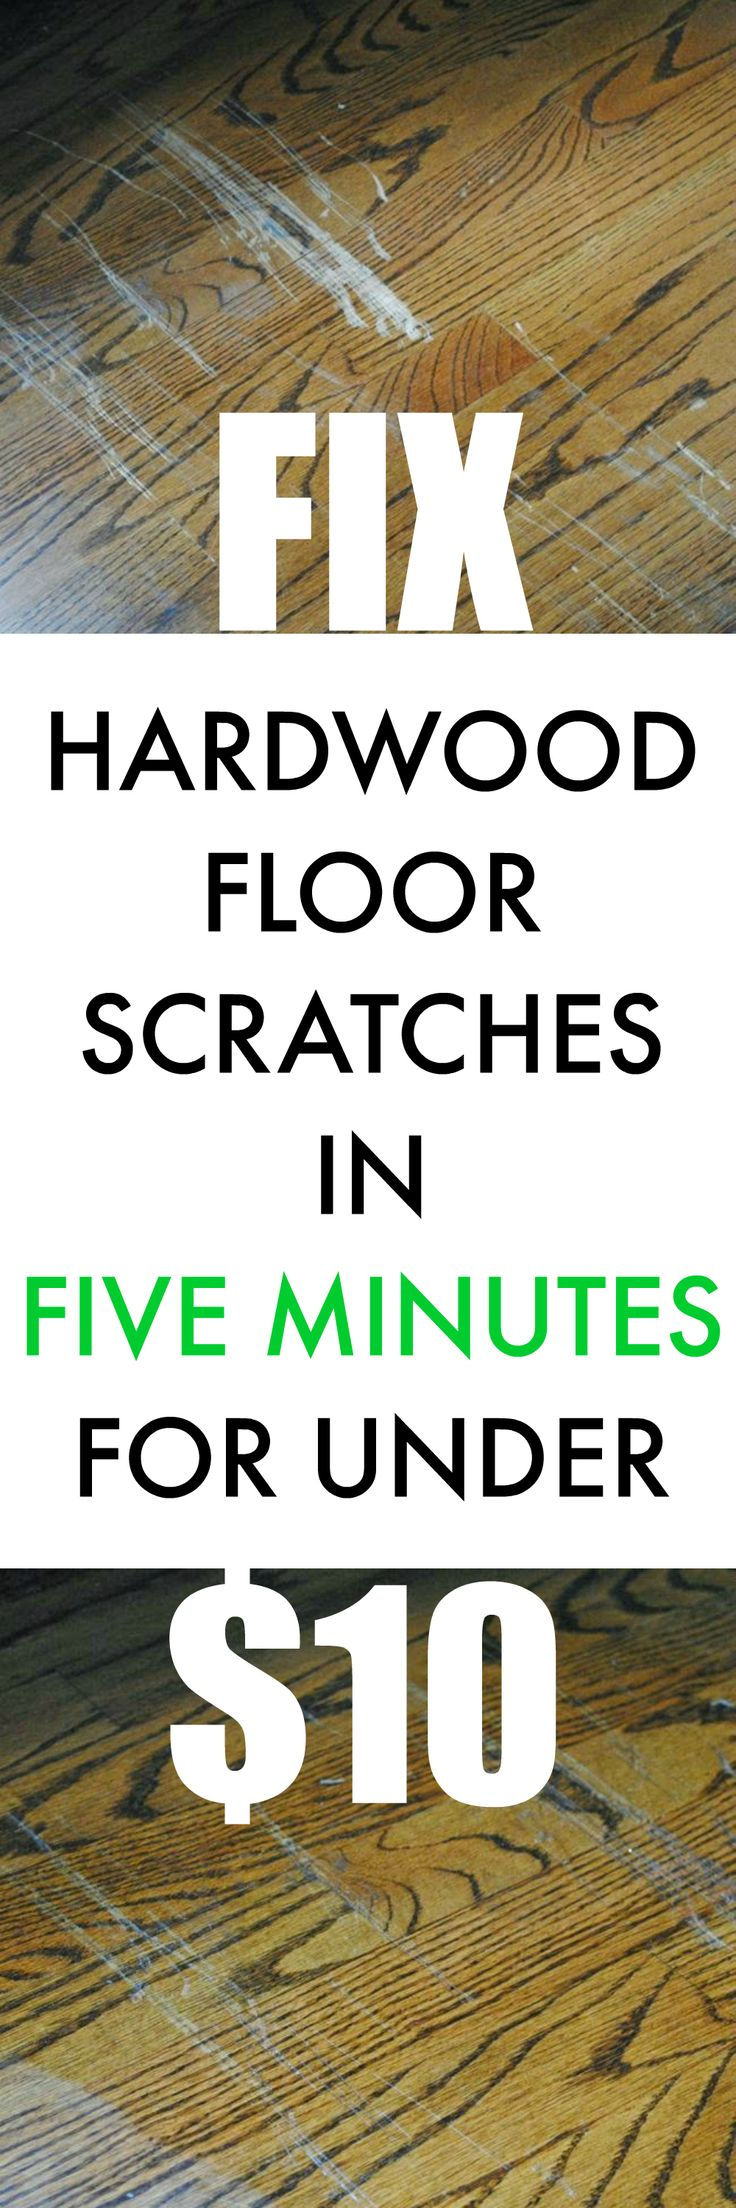 How to fix hardwood floor scratches in about five minutes for under $10!